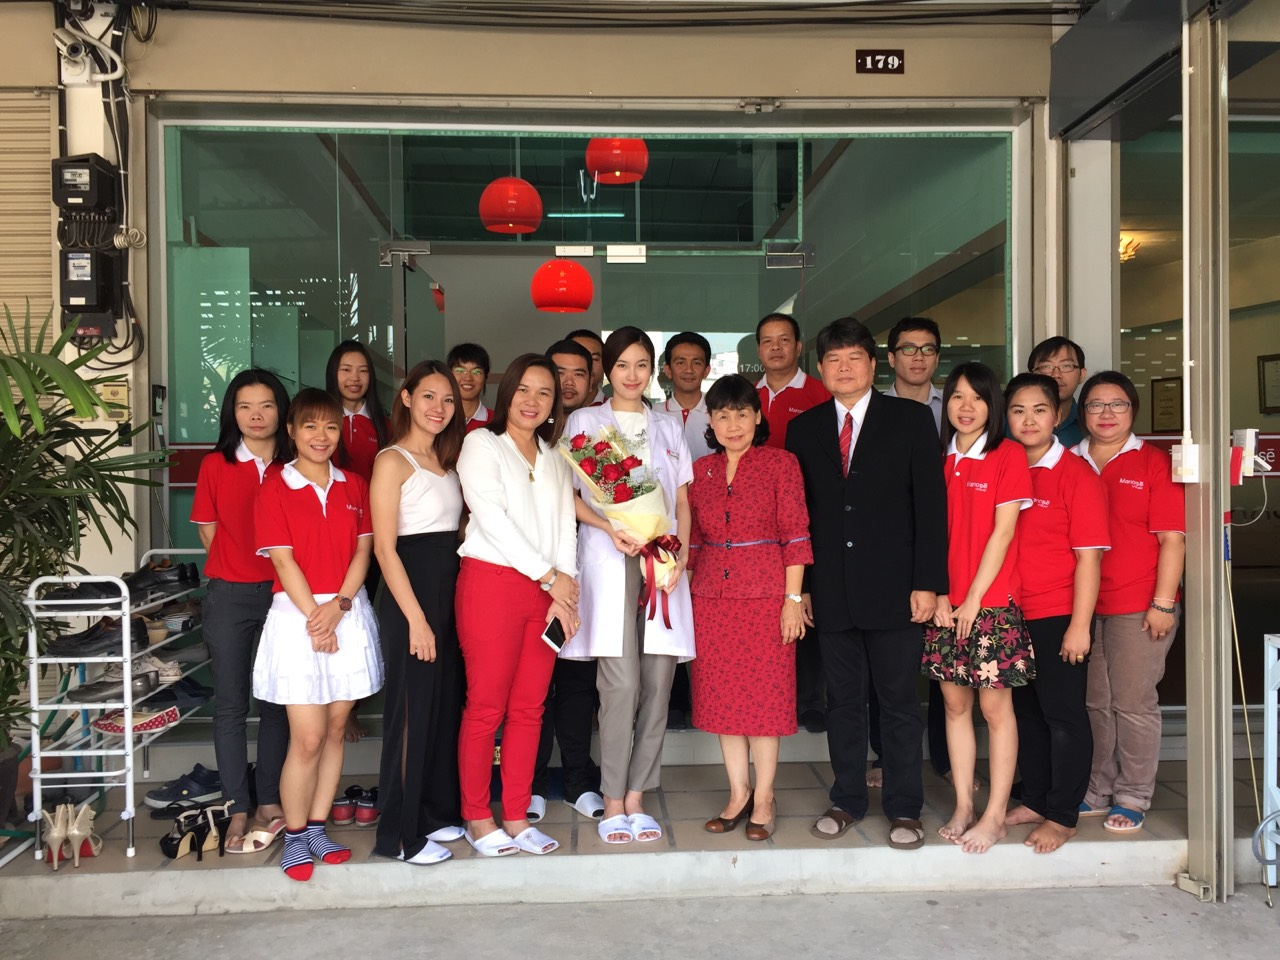 Poy Treechada together with the team from Fure Fu Co., Ltd. in Bangkok with the total of 4 persons visited Manose Health and Beauty Research Center